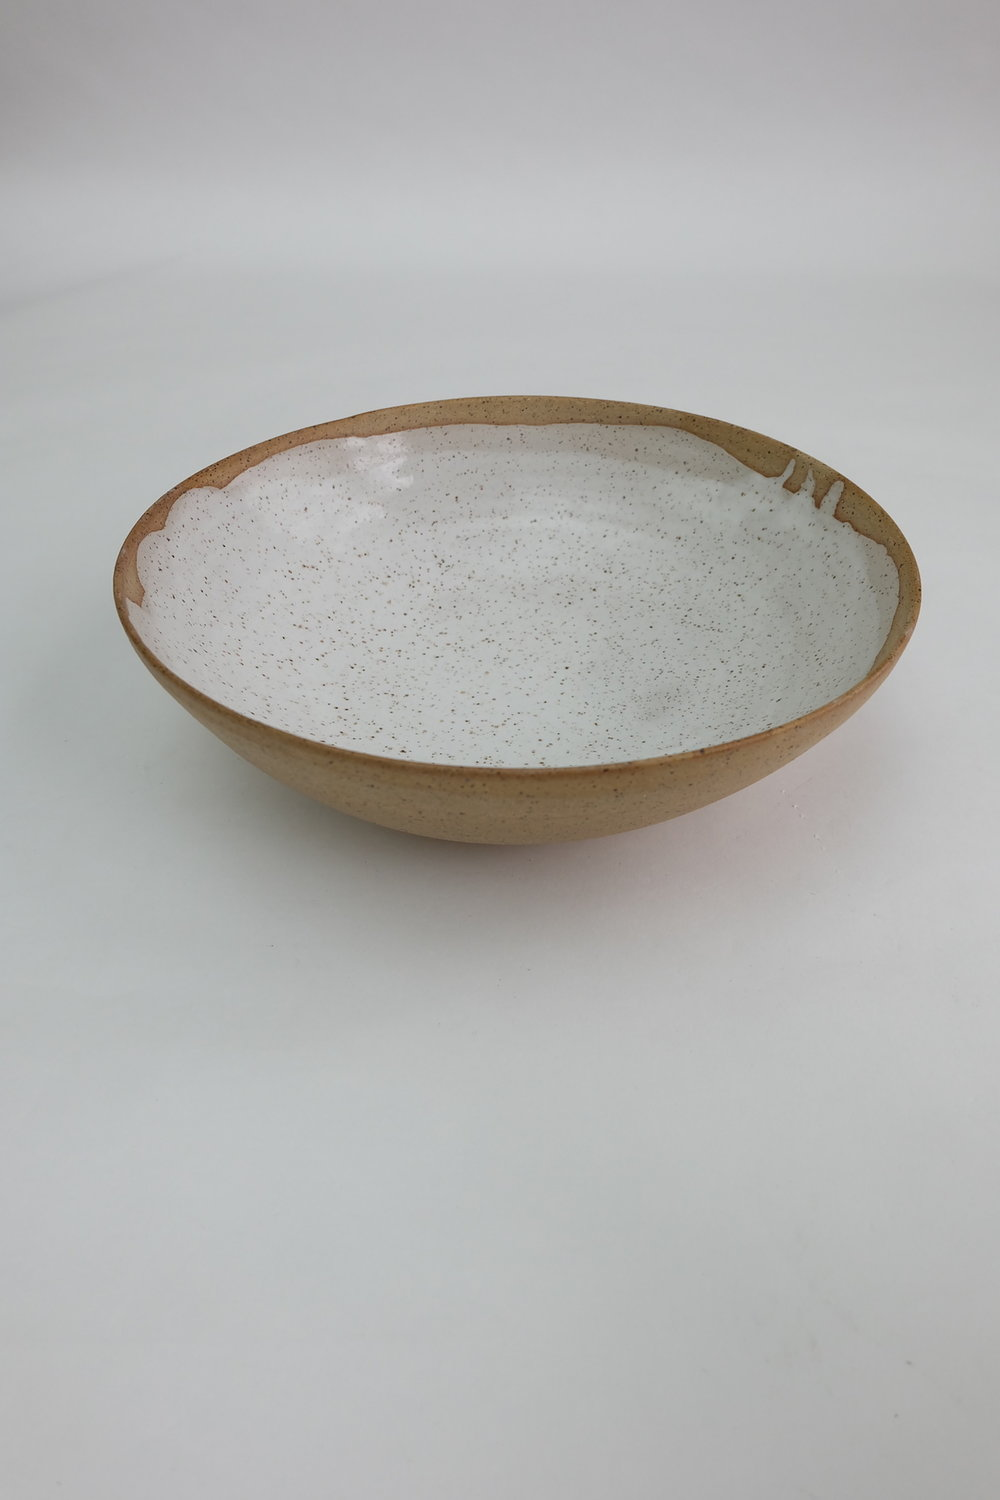 """13""""diameter serving bowl finished in a milky glossy glaze contrasting with the rough texture of natural clay."""